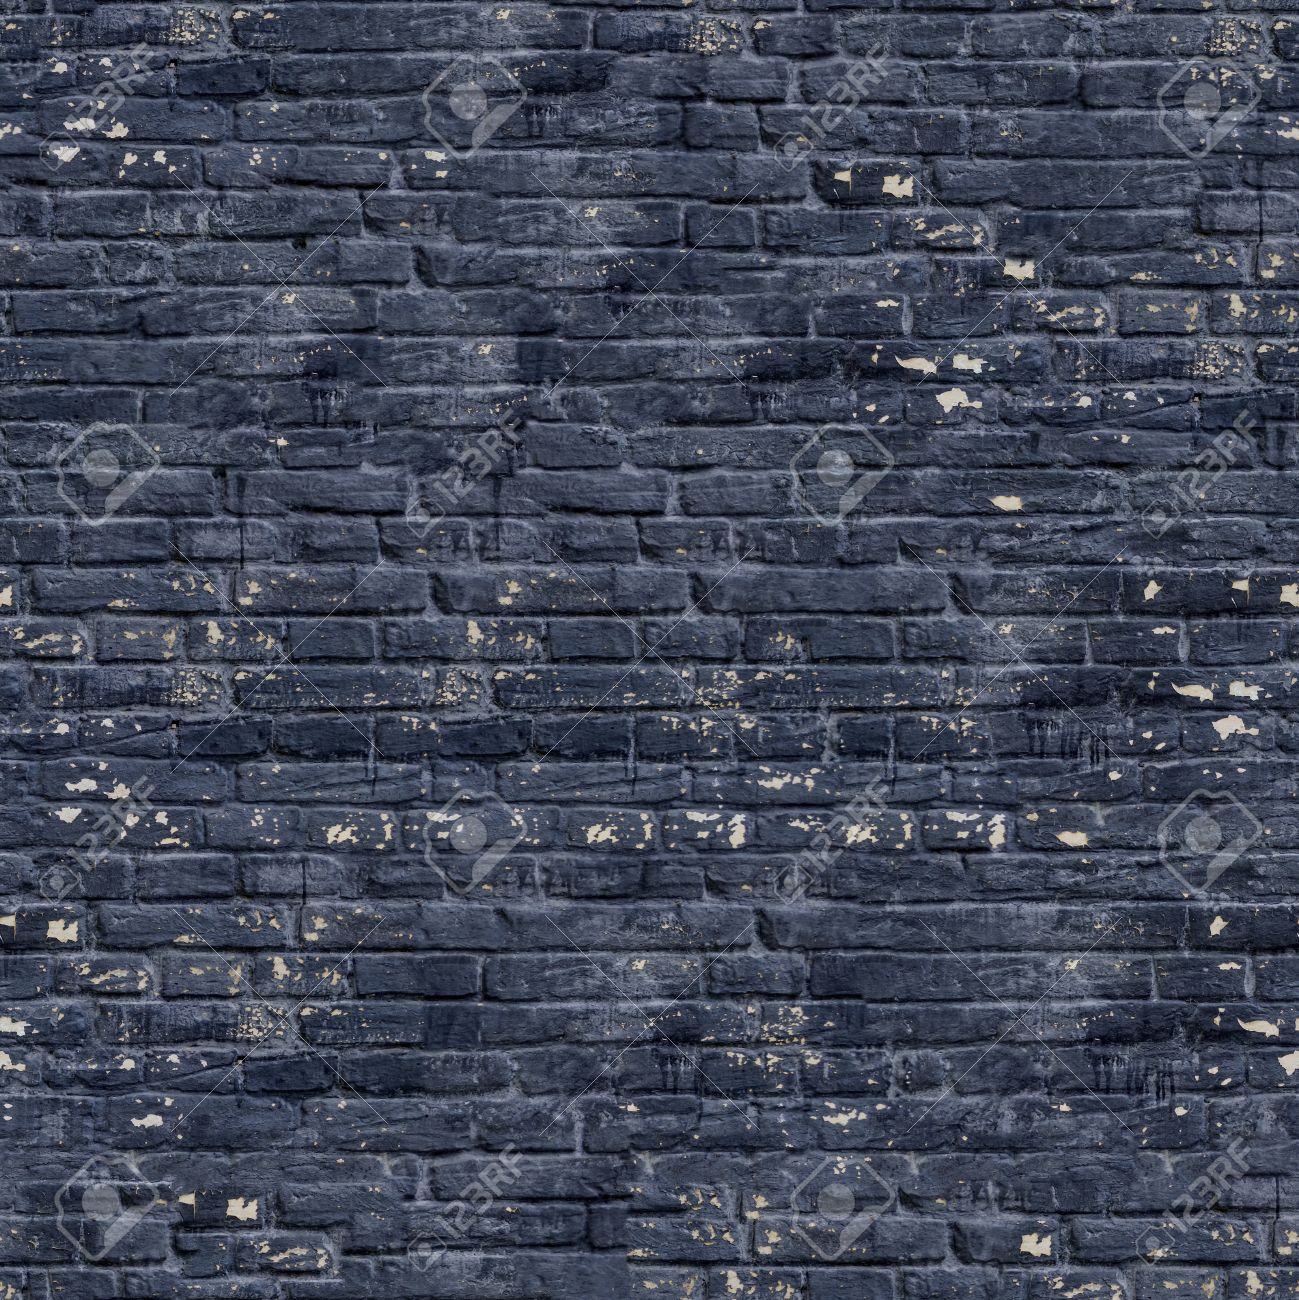 Black Brick Wall With Cracks Dirt Spots Seamless Tileable Texture